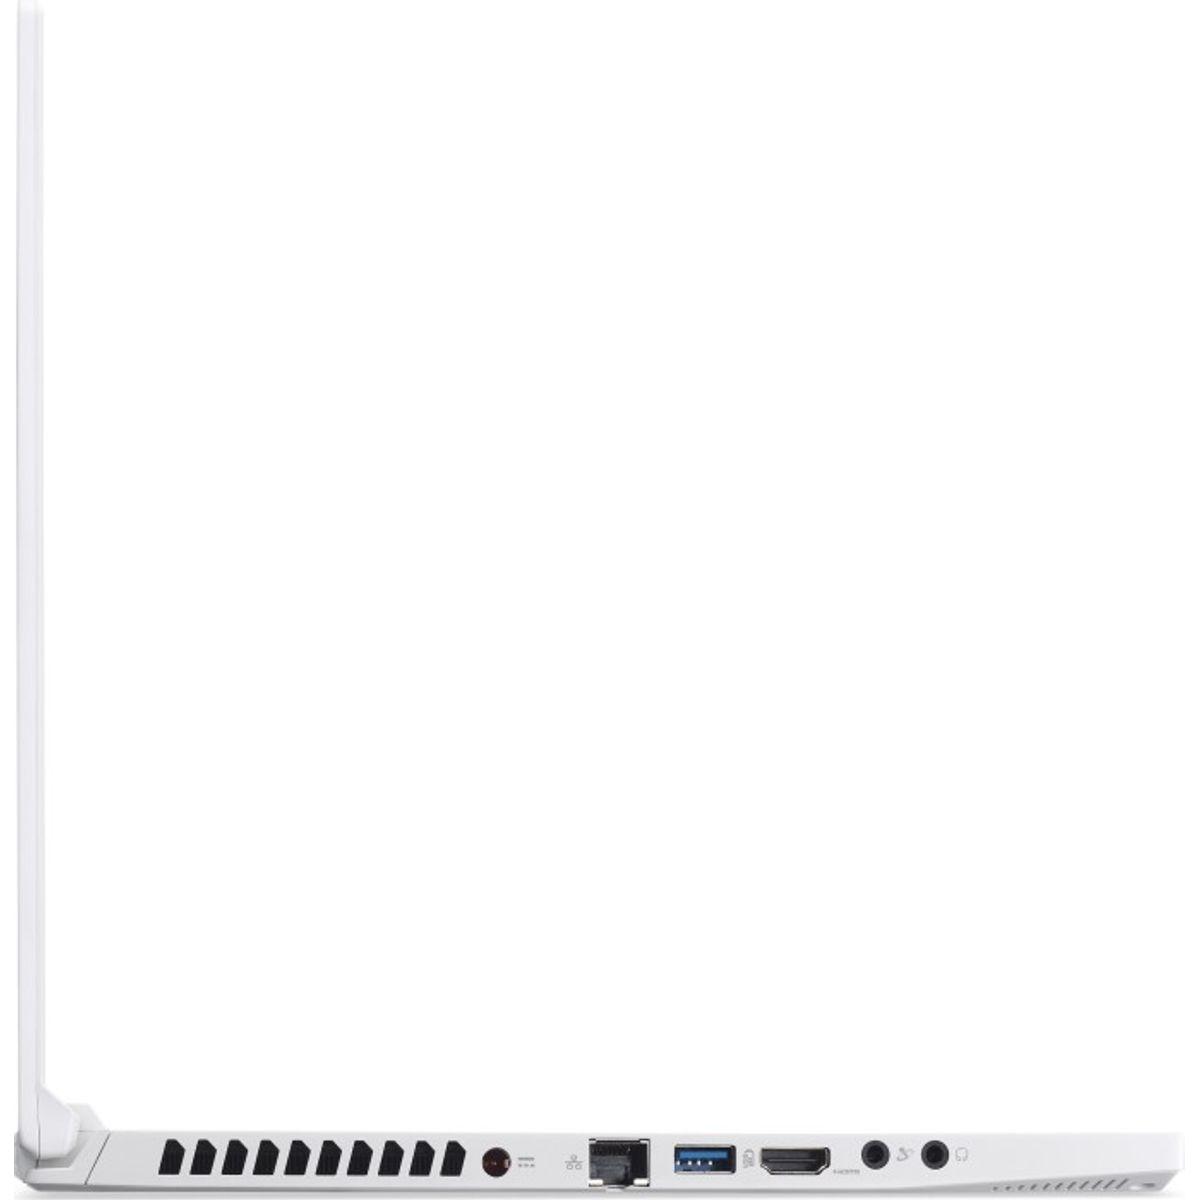 Acer ConceptD (CN715-71P-78YW)